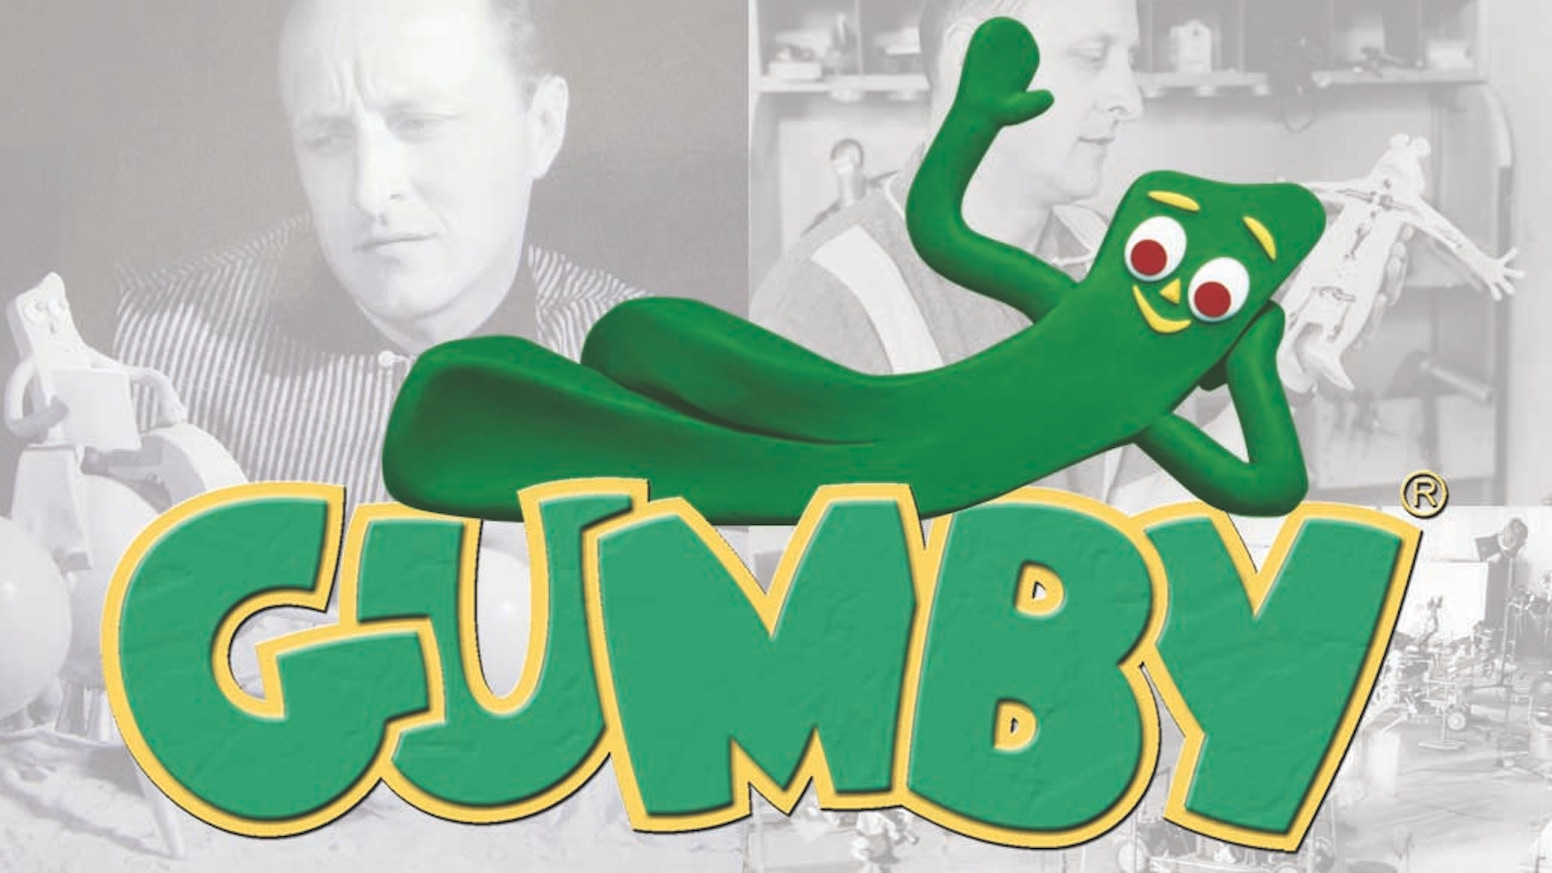 Help us bring the story of Gumby's creator Art Clokey to life in a beautiful behind the scenes art book of his creations.